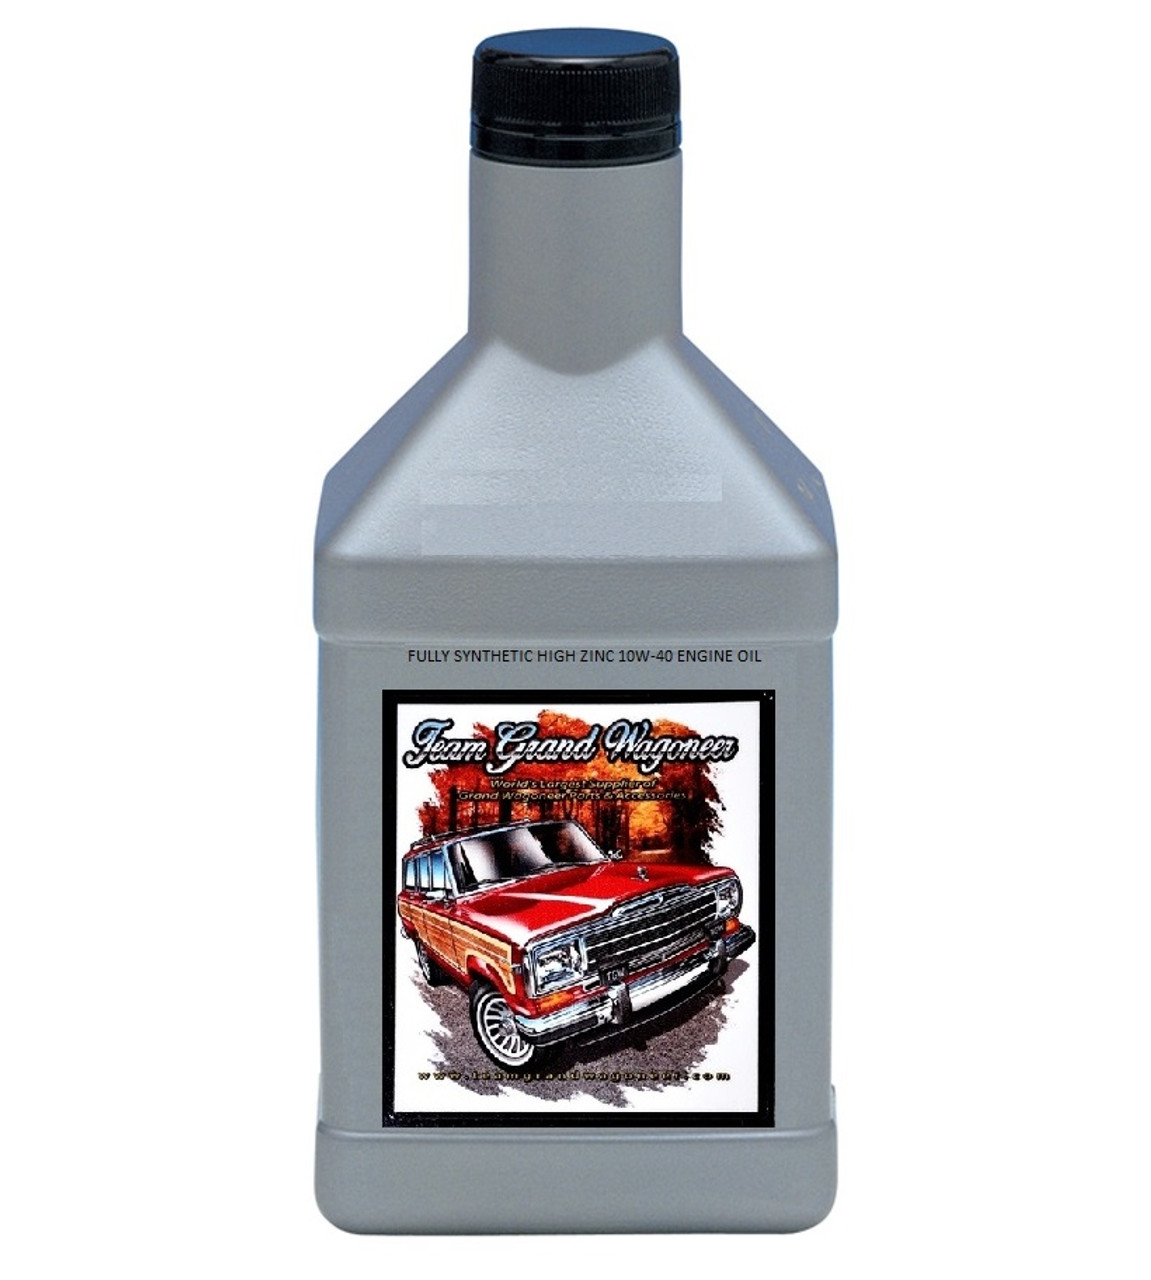 10W40 HIGH ZINC FULLY SYNTHETIC ENGINE OIL